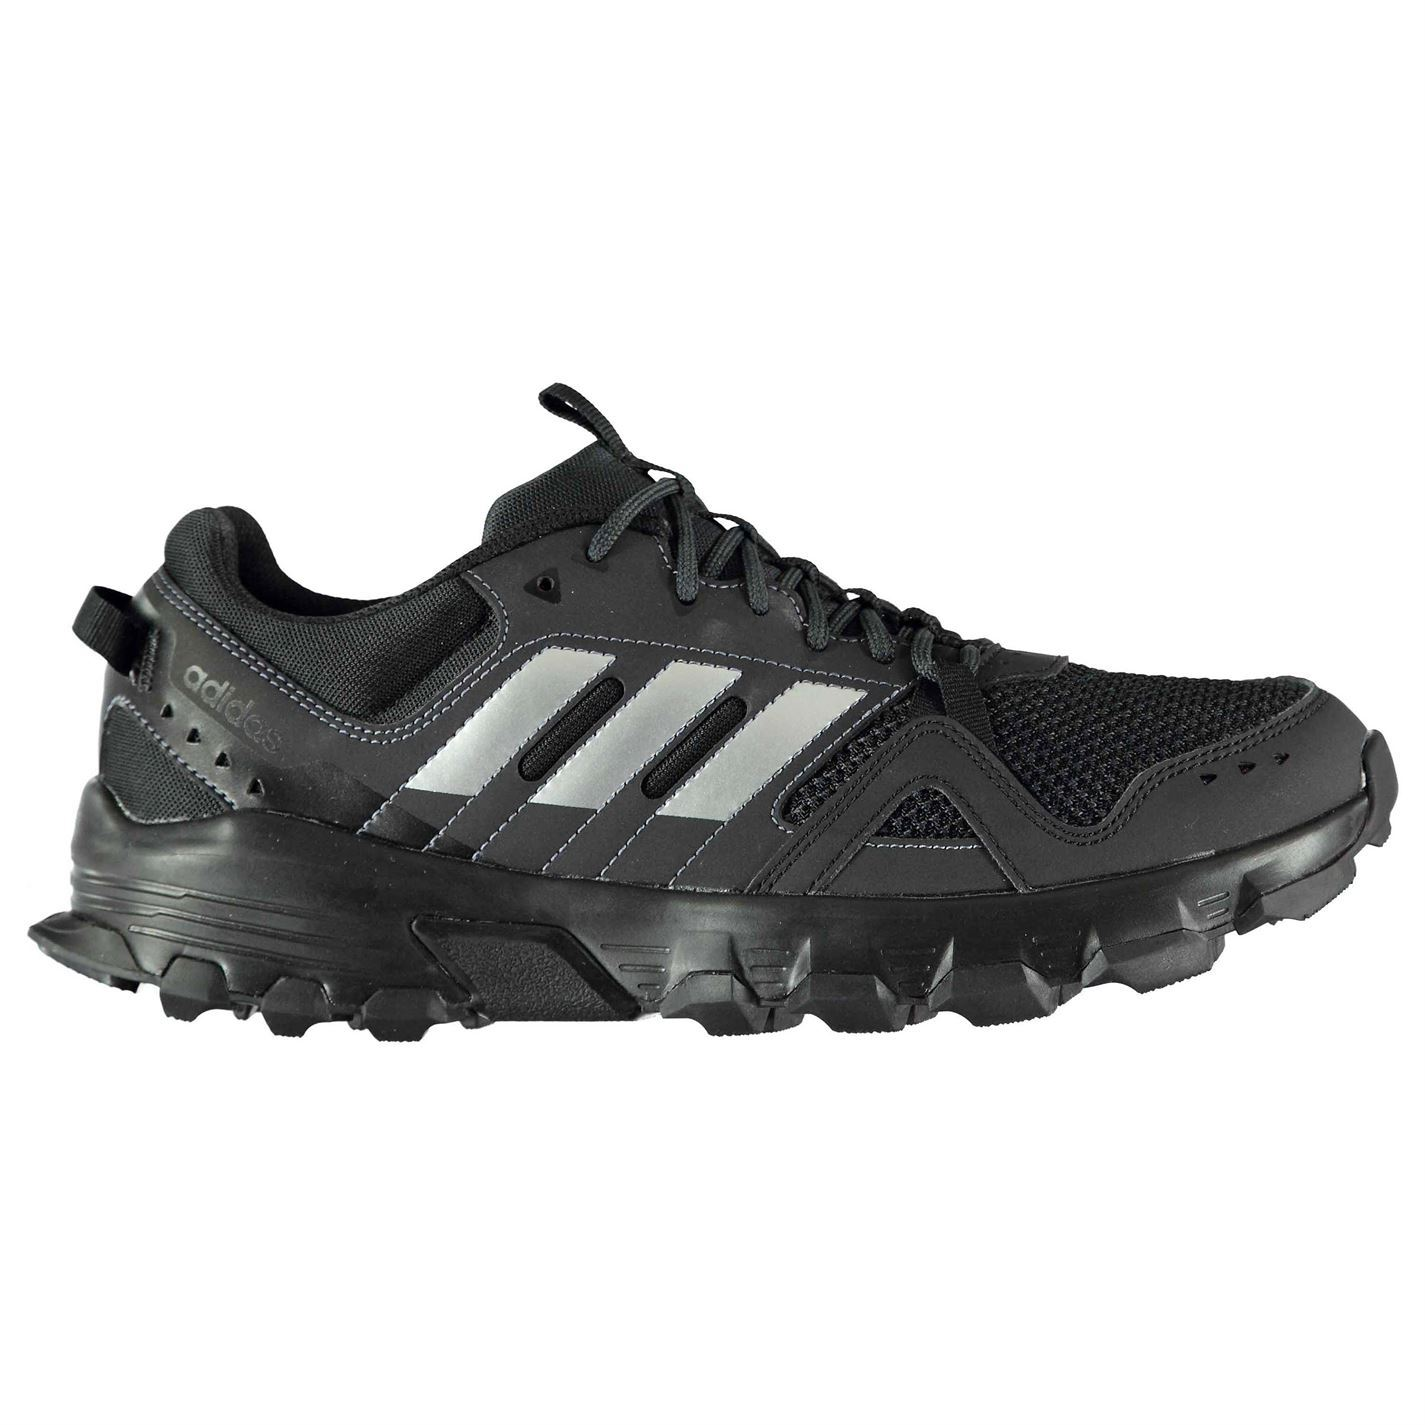 ... adidas Rockadia Trail Running Shoes Mens Black/Grey Jogging Trainers  Sneakers ...